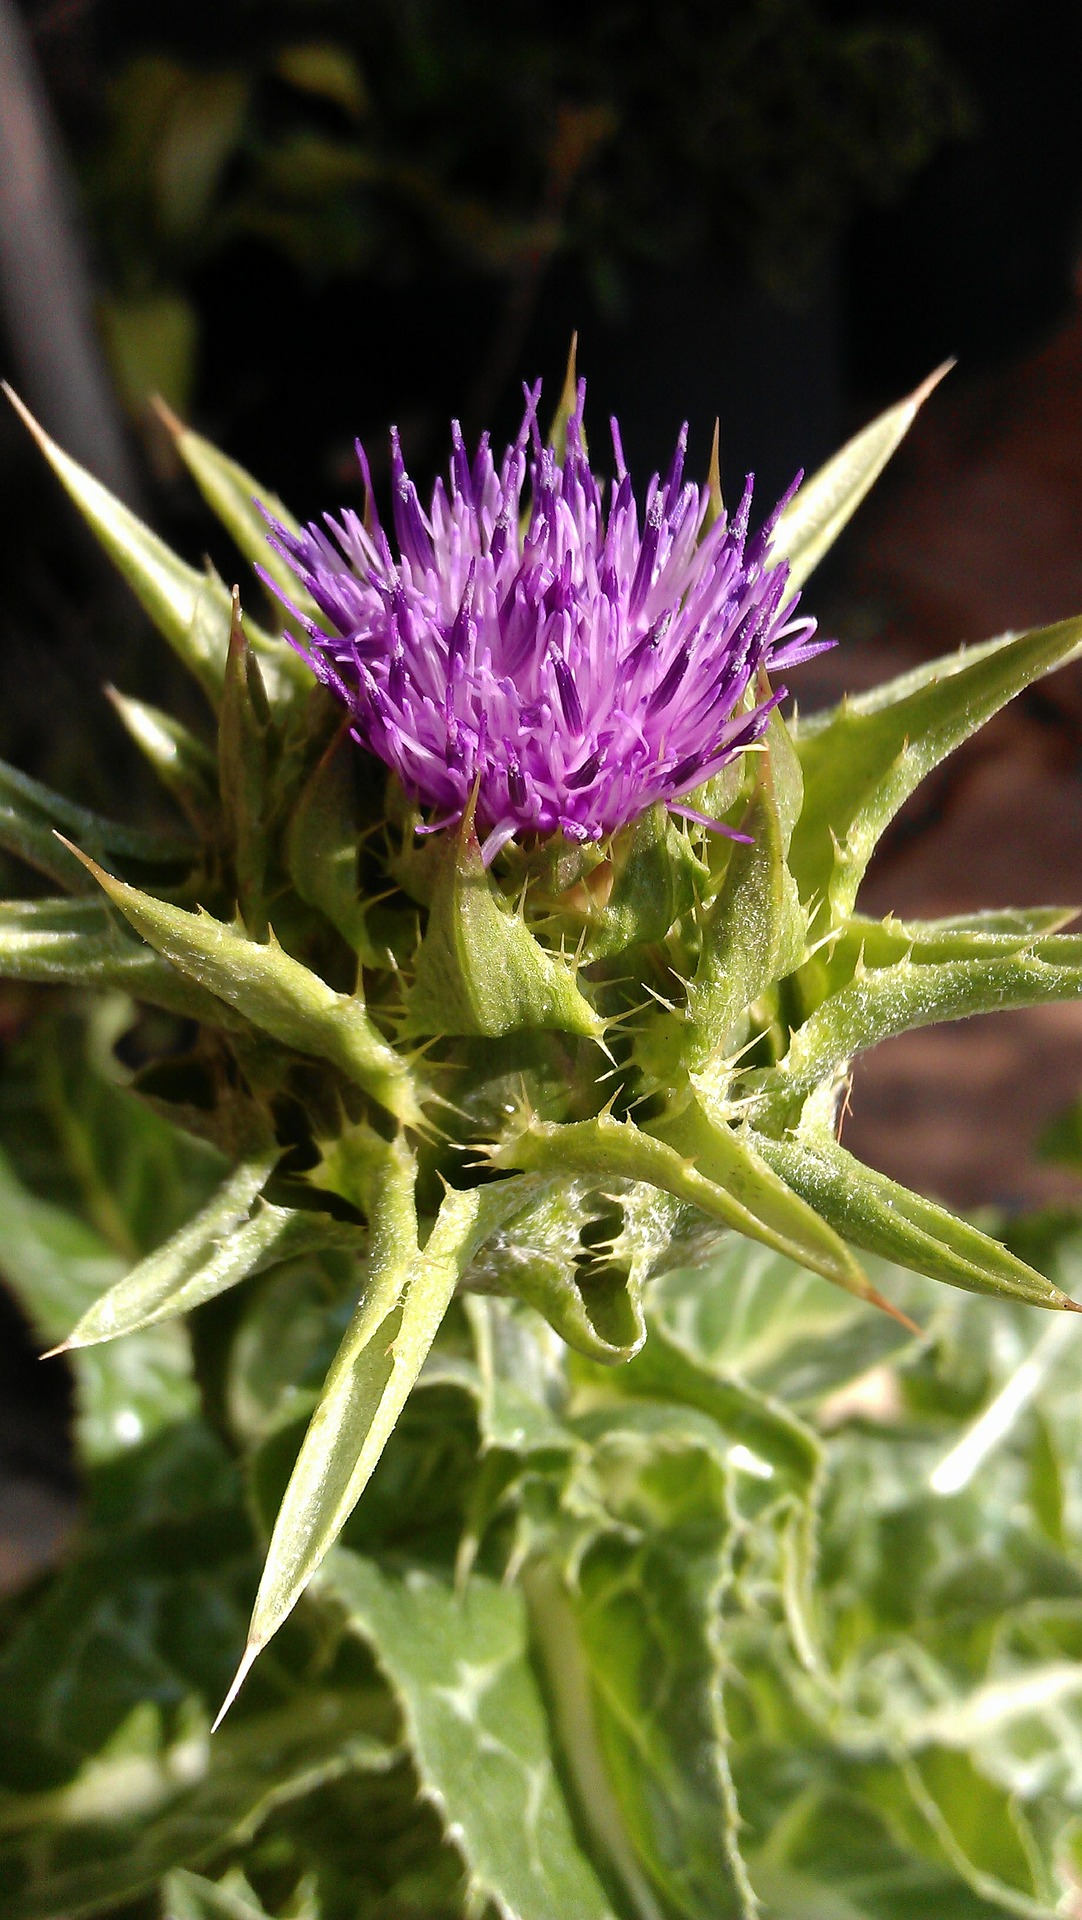 bbs_1412051350_milk-thistle-393005_1920.jpg